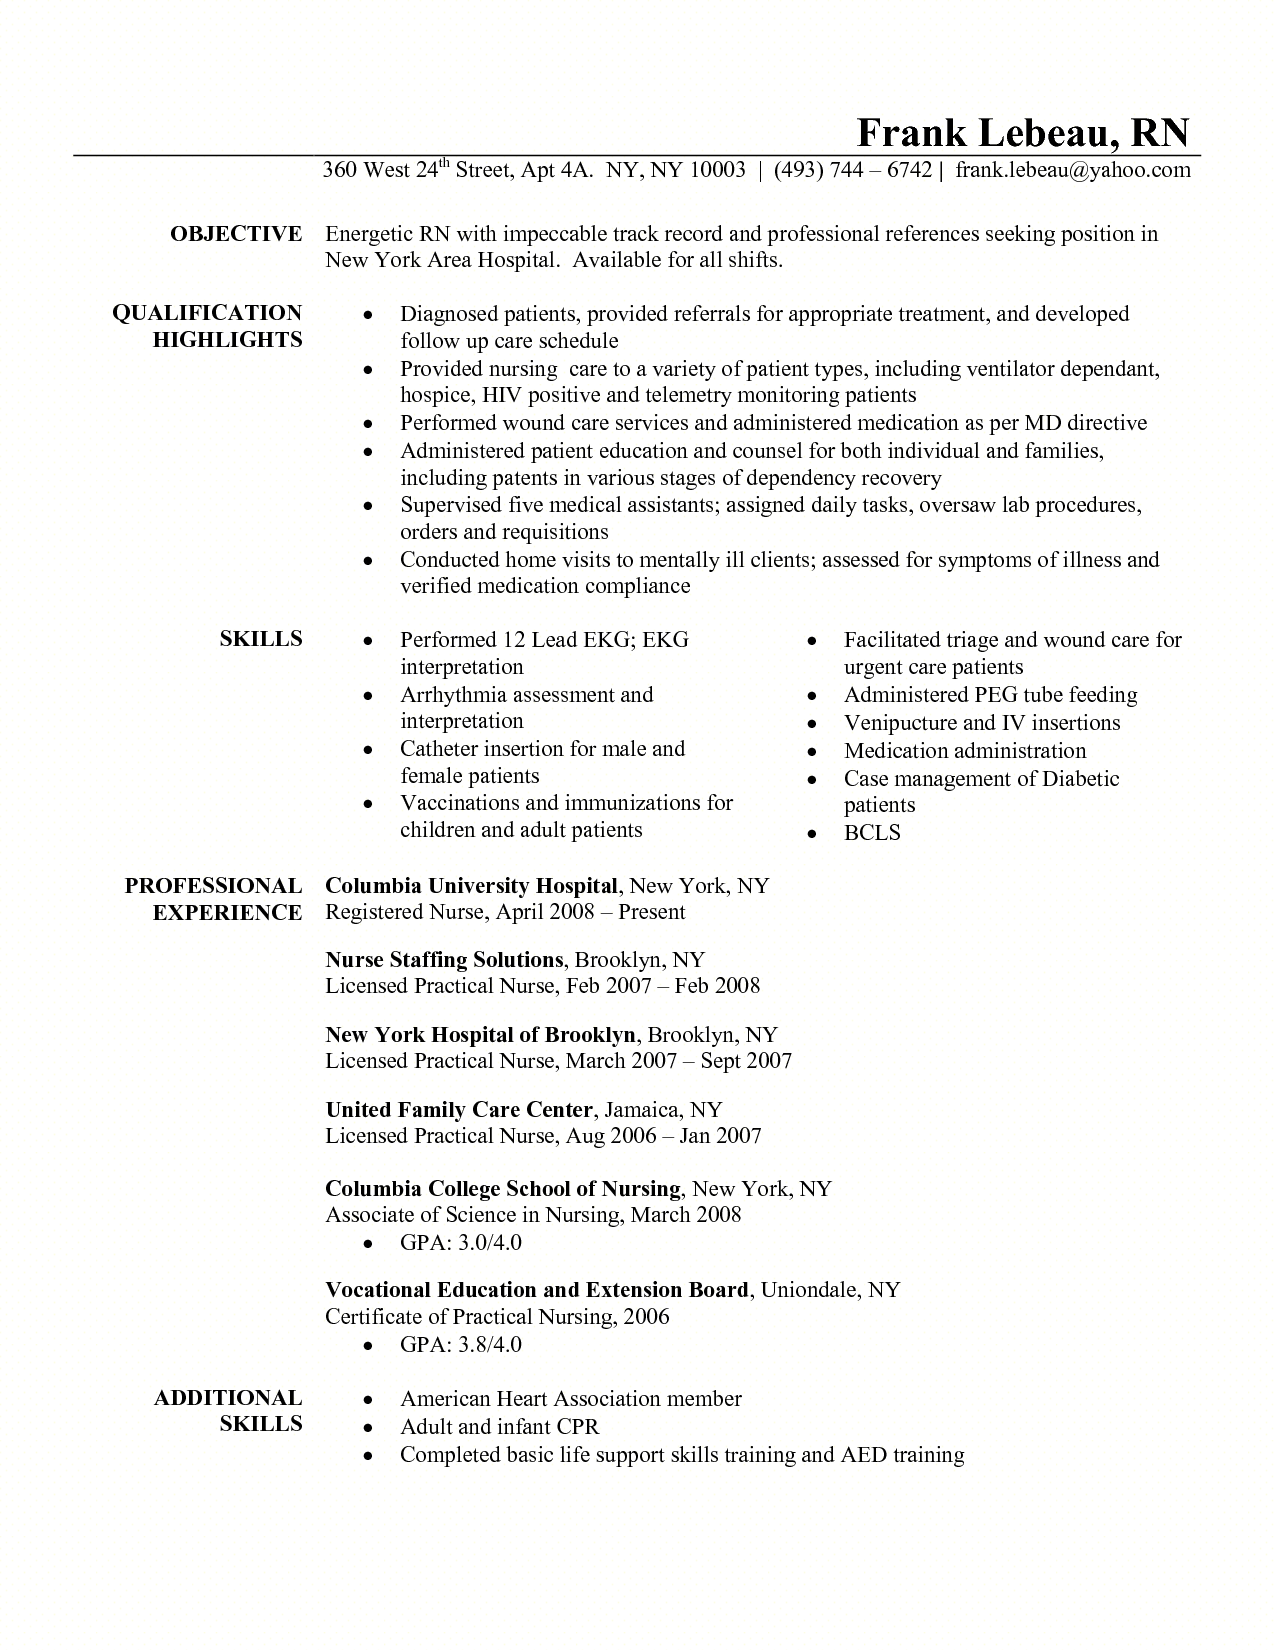 free nursing resume templates online resume genius resume template sample format for university student resume sample